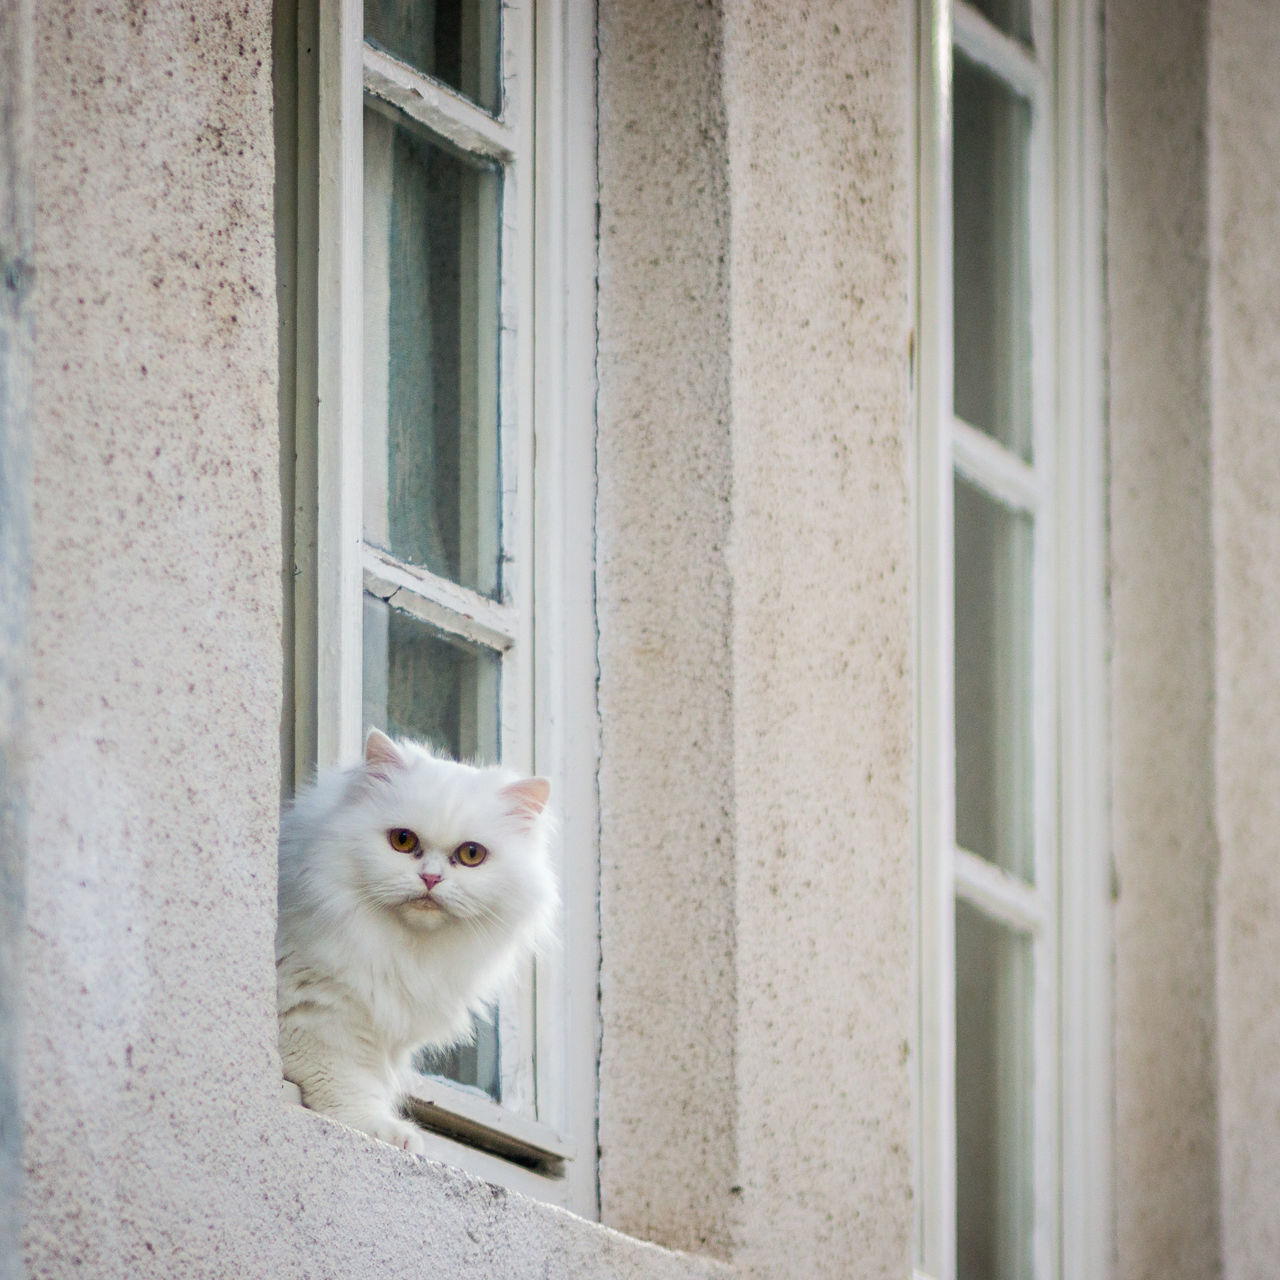 Animal Themes Close-up Day Domestic Animals Domestic Cat Feline Indoors  Mammal No People One Animal Persian Cat  Pets Portrait White Window